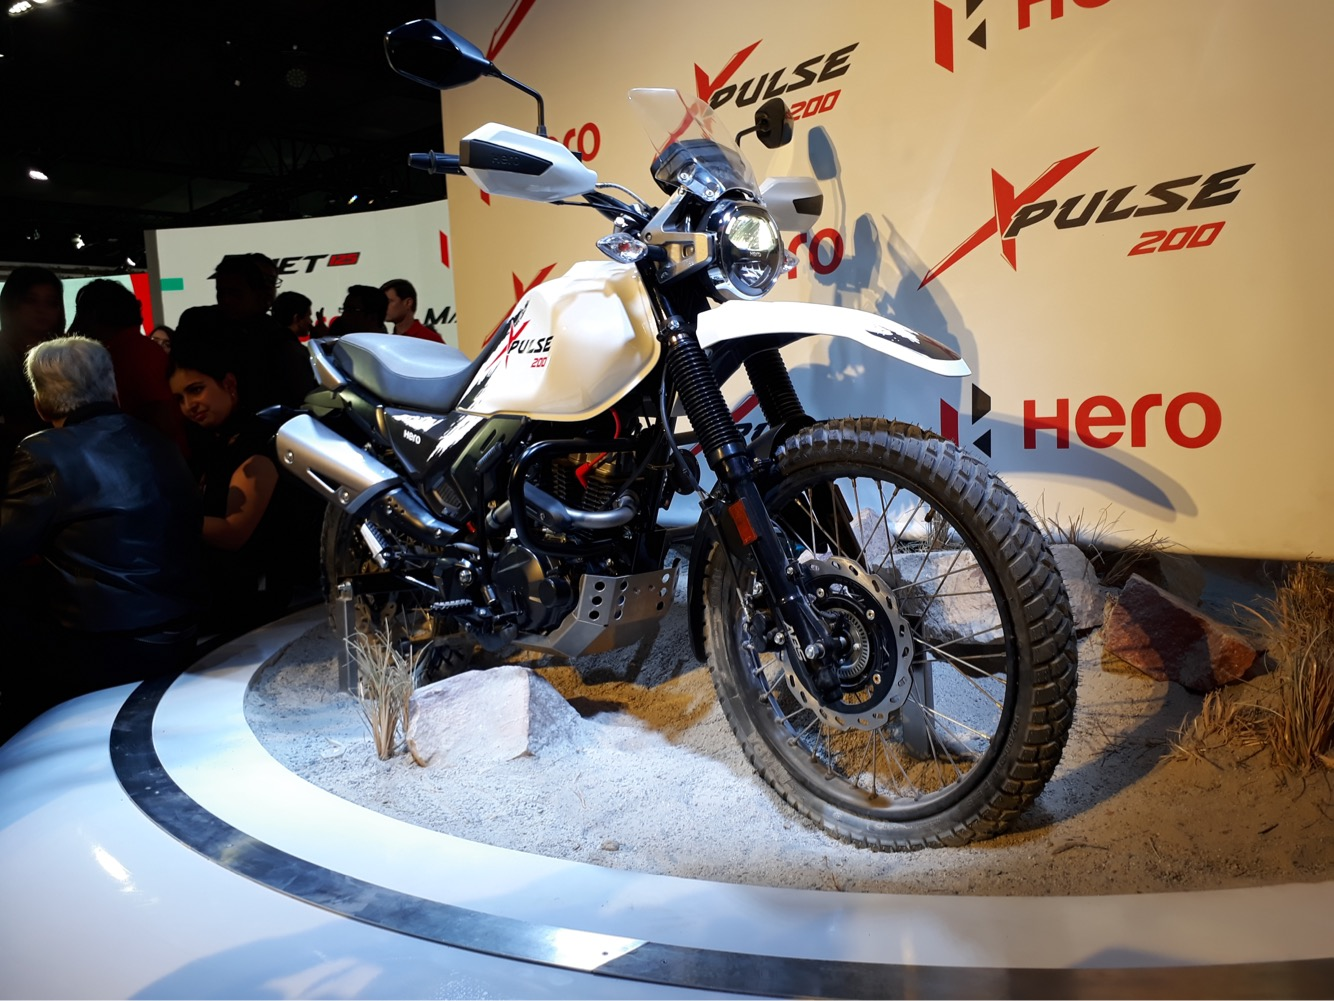 Auto Expo 2018: Hero MotoCorp Unveils 200cc Adventure Motorcycle, 2 Scooters